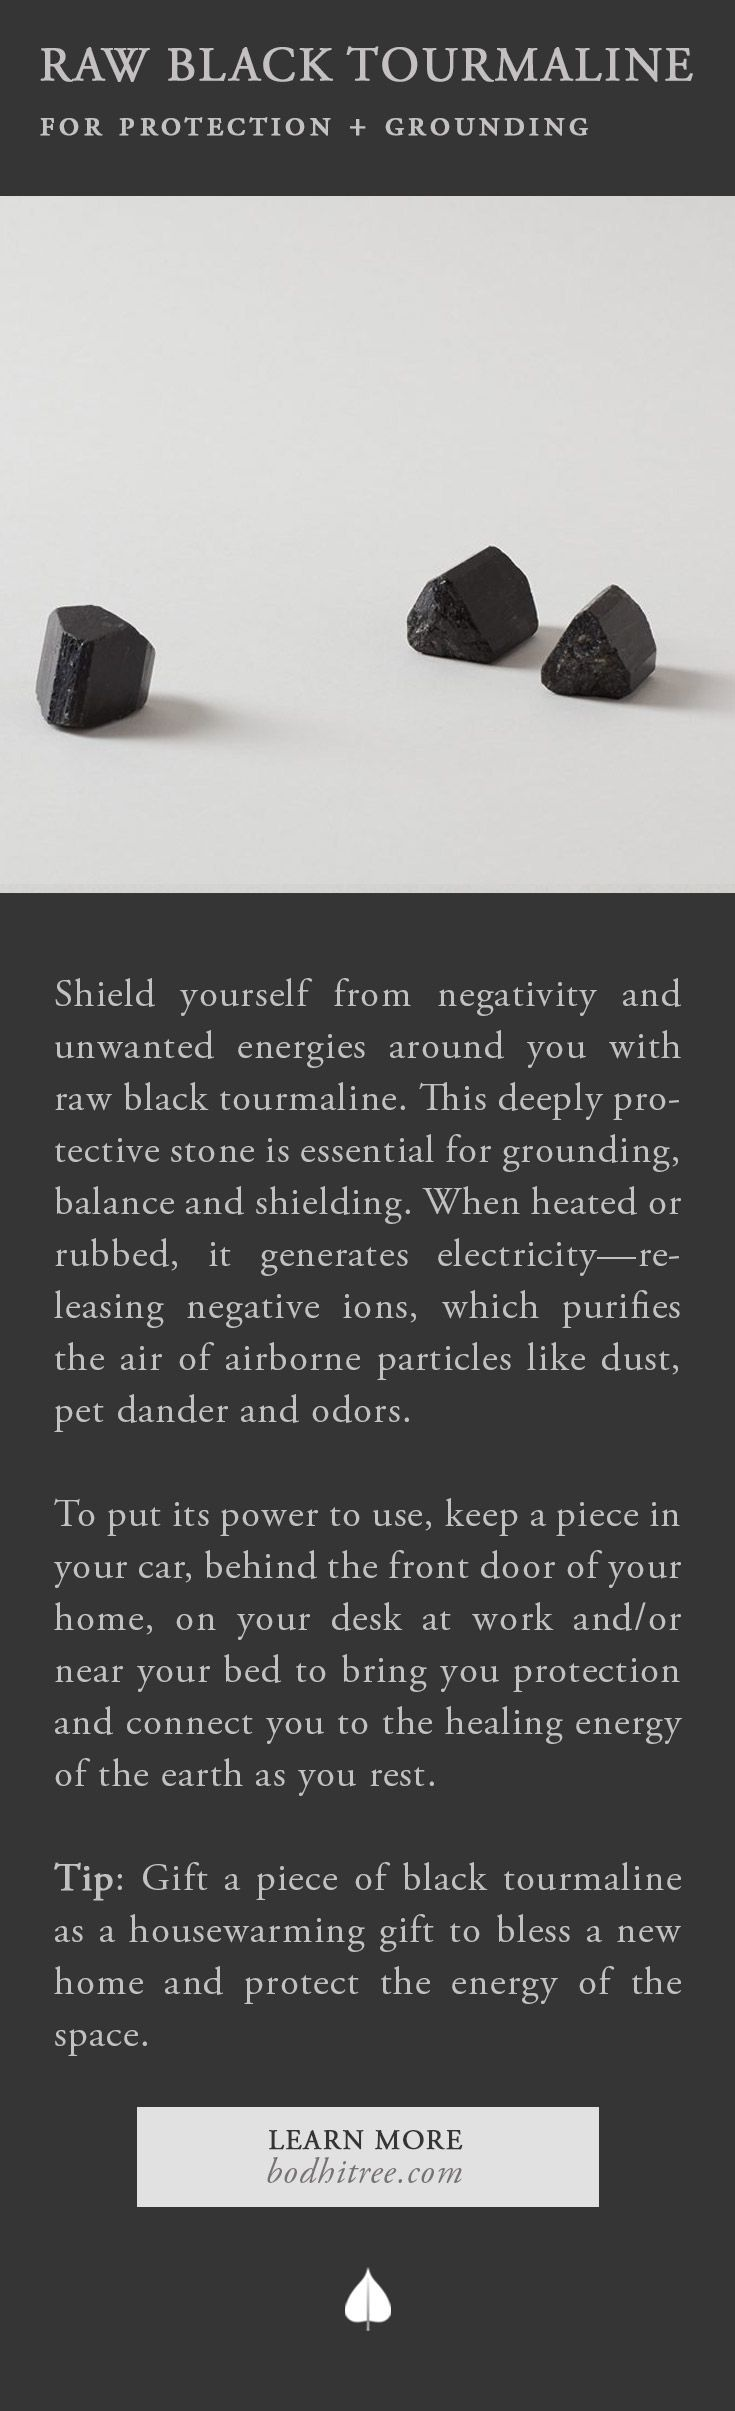 Black Tourmaline for grounding, shielding and protection...